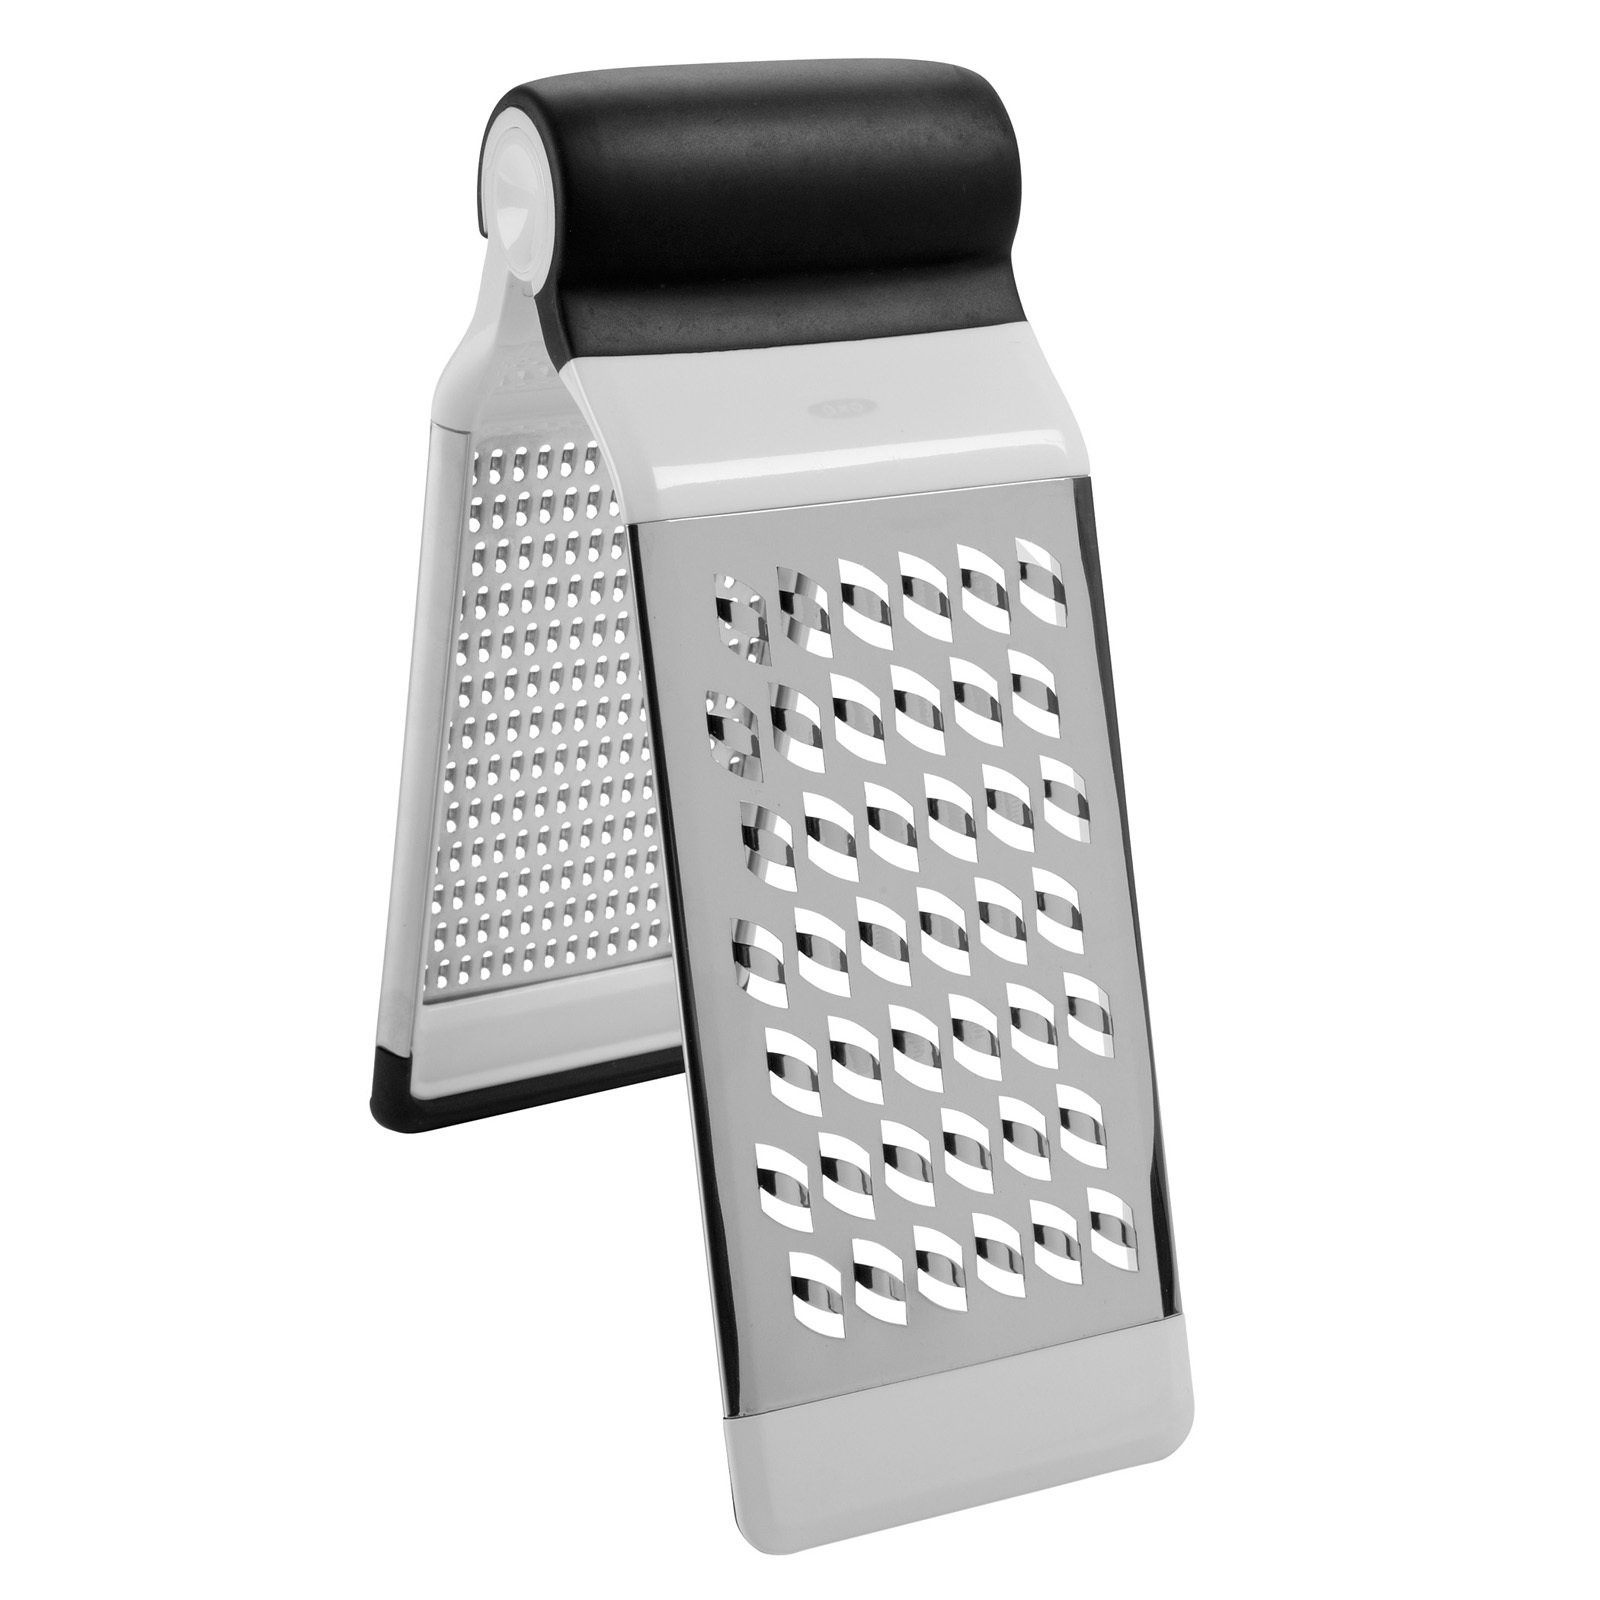 Another space-saving grater is the new Two-Fold Grater, available in November. The tool features a medium and coarse grater that can be positioned like a tent for grating over a cutting board or taken apart to be used one at a time.  New from OXO by Miyoko Ohtake